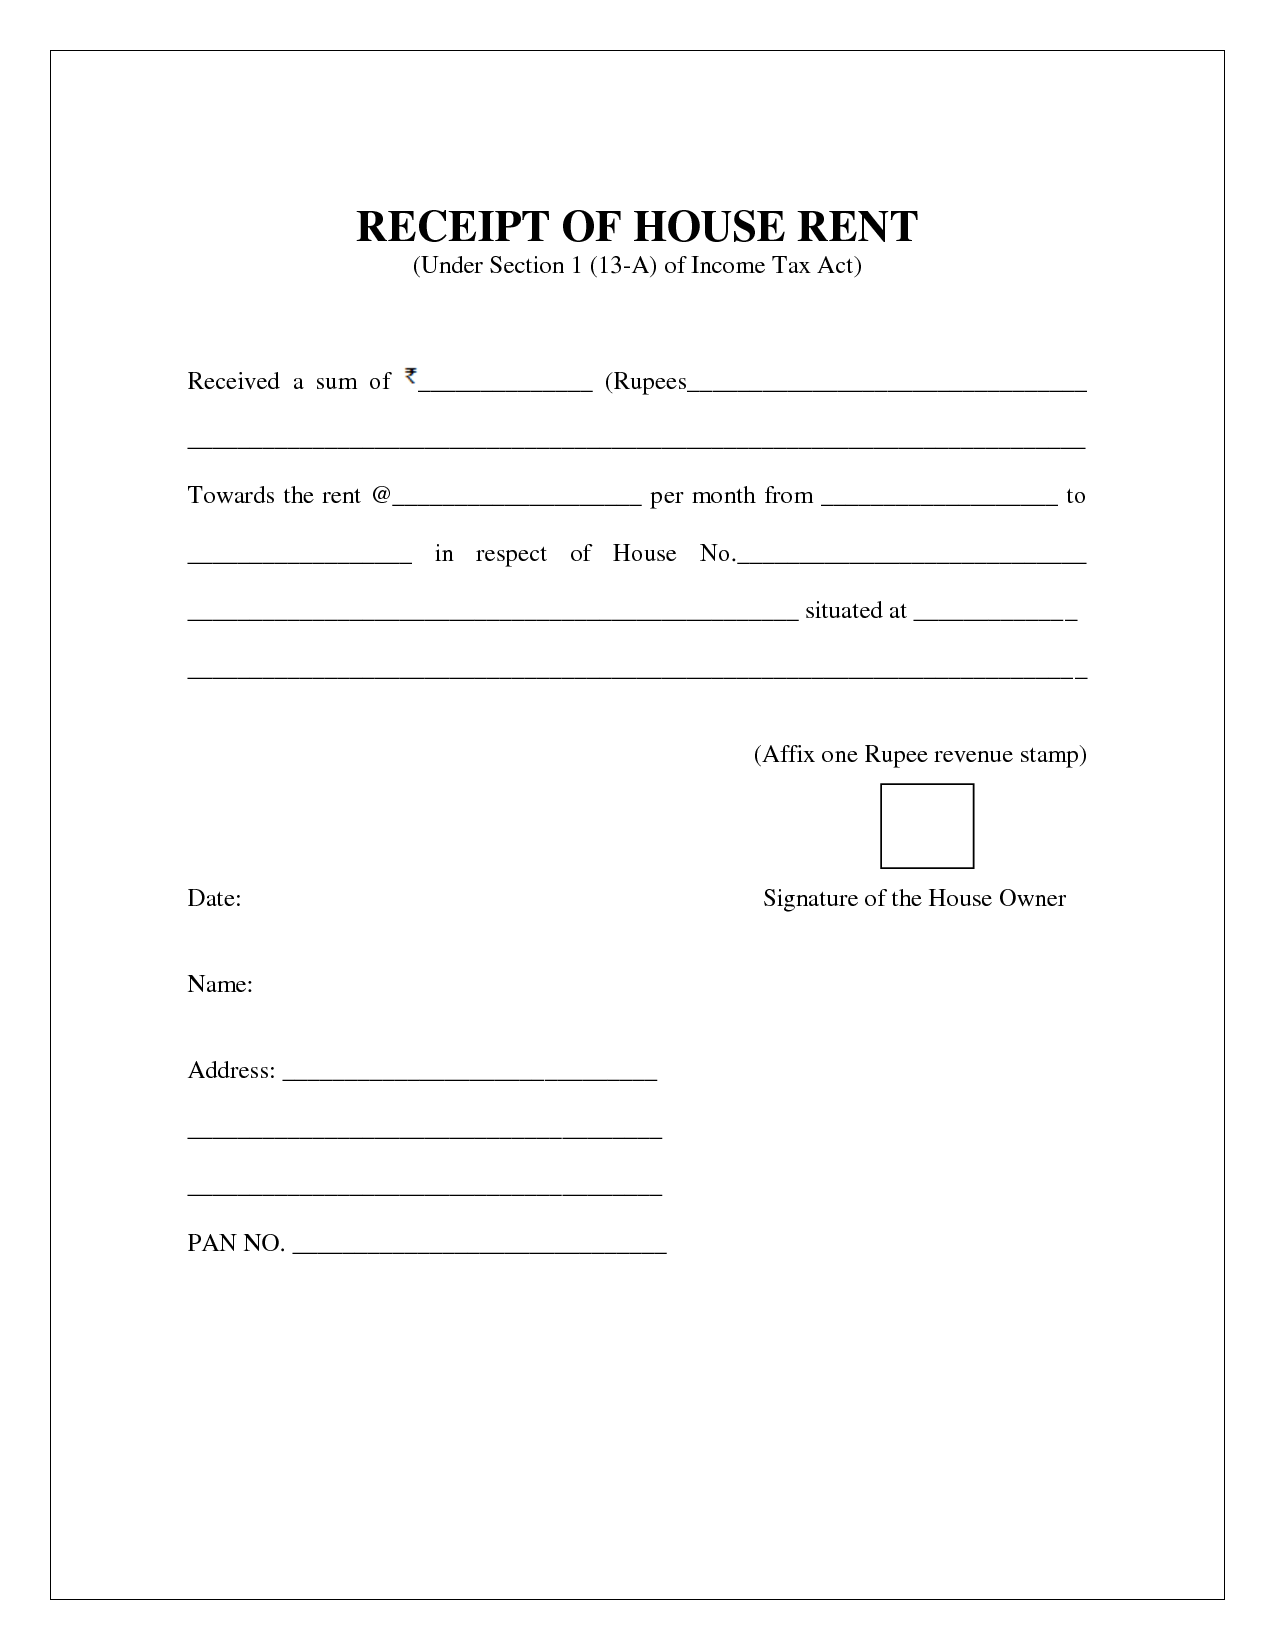 Exceptional Template With Format For House Rent Receipt